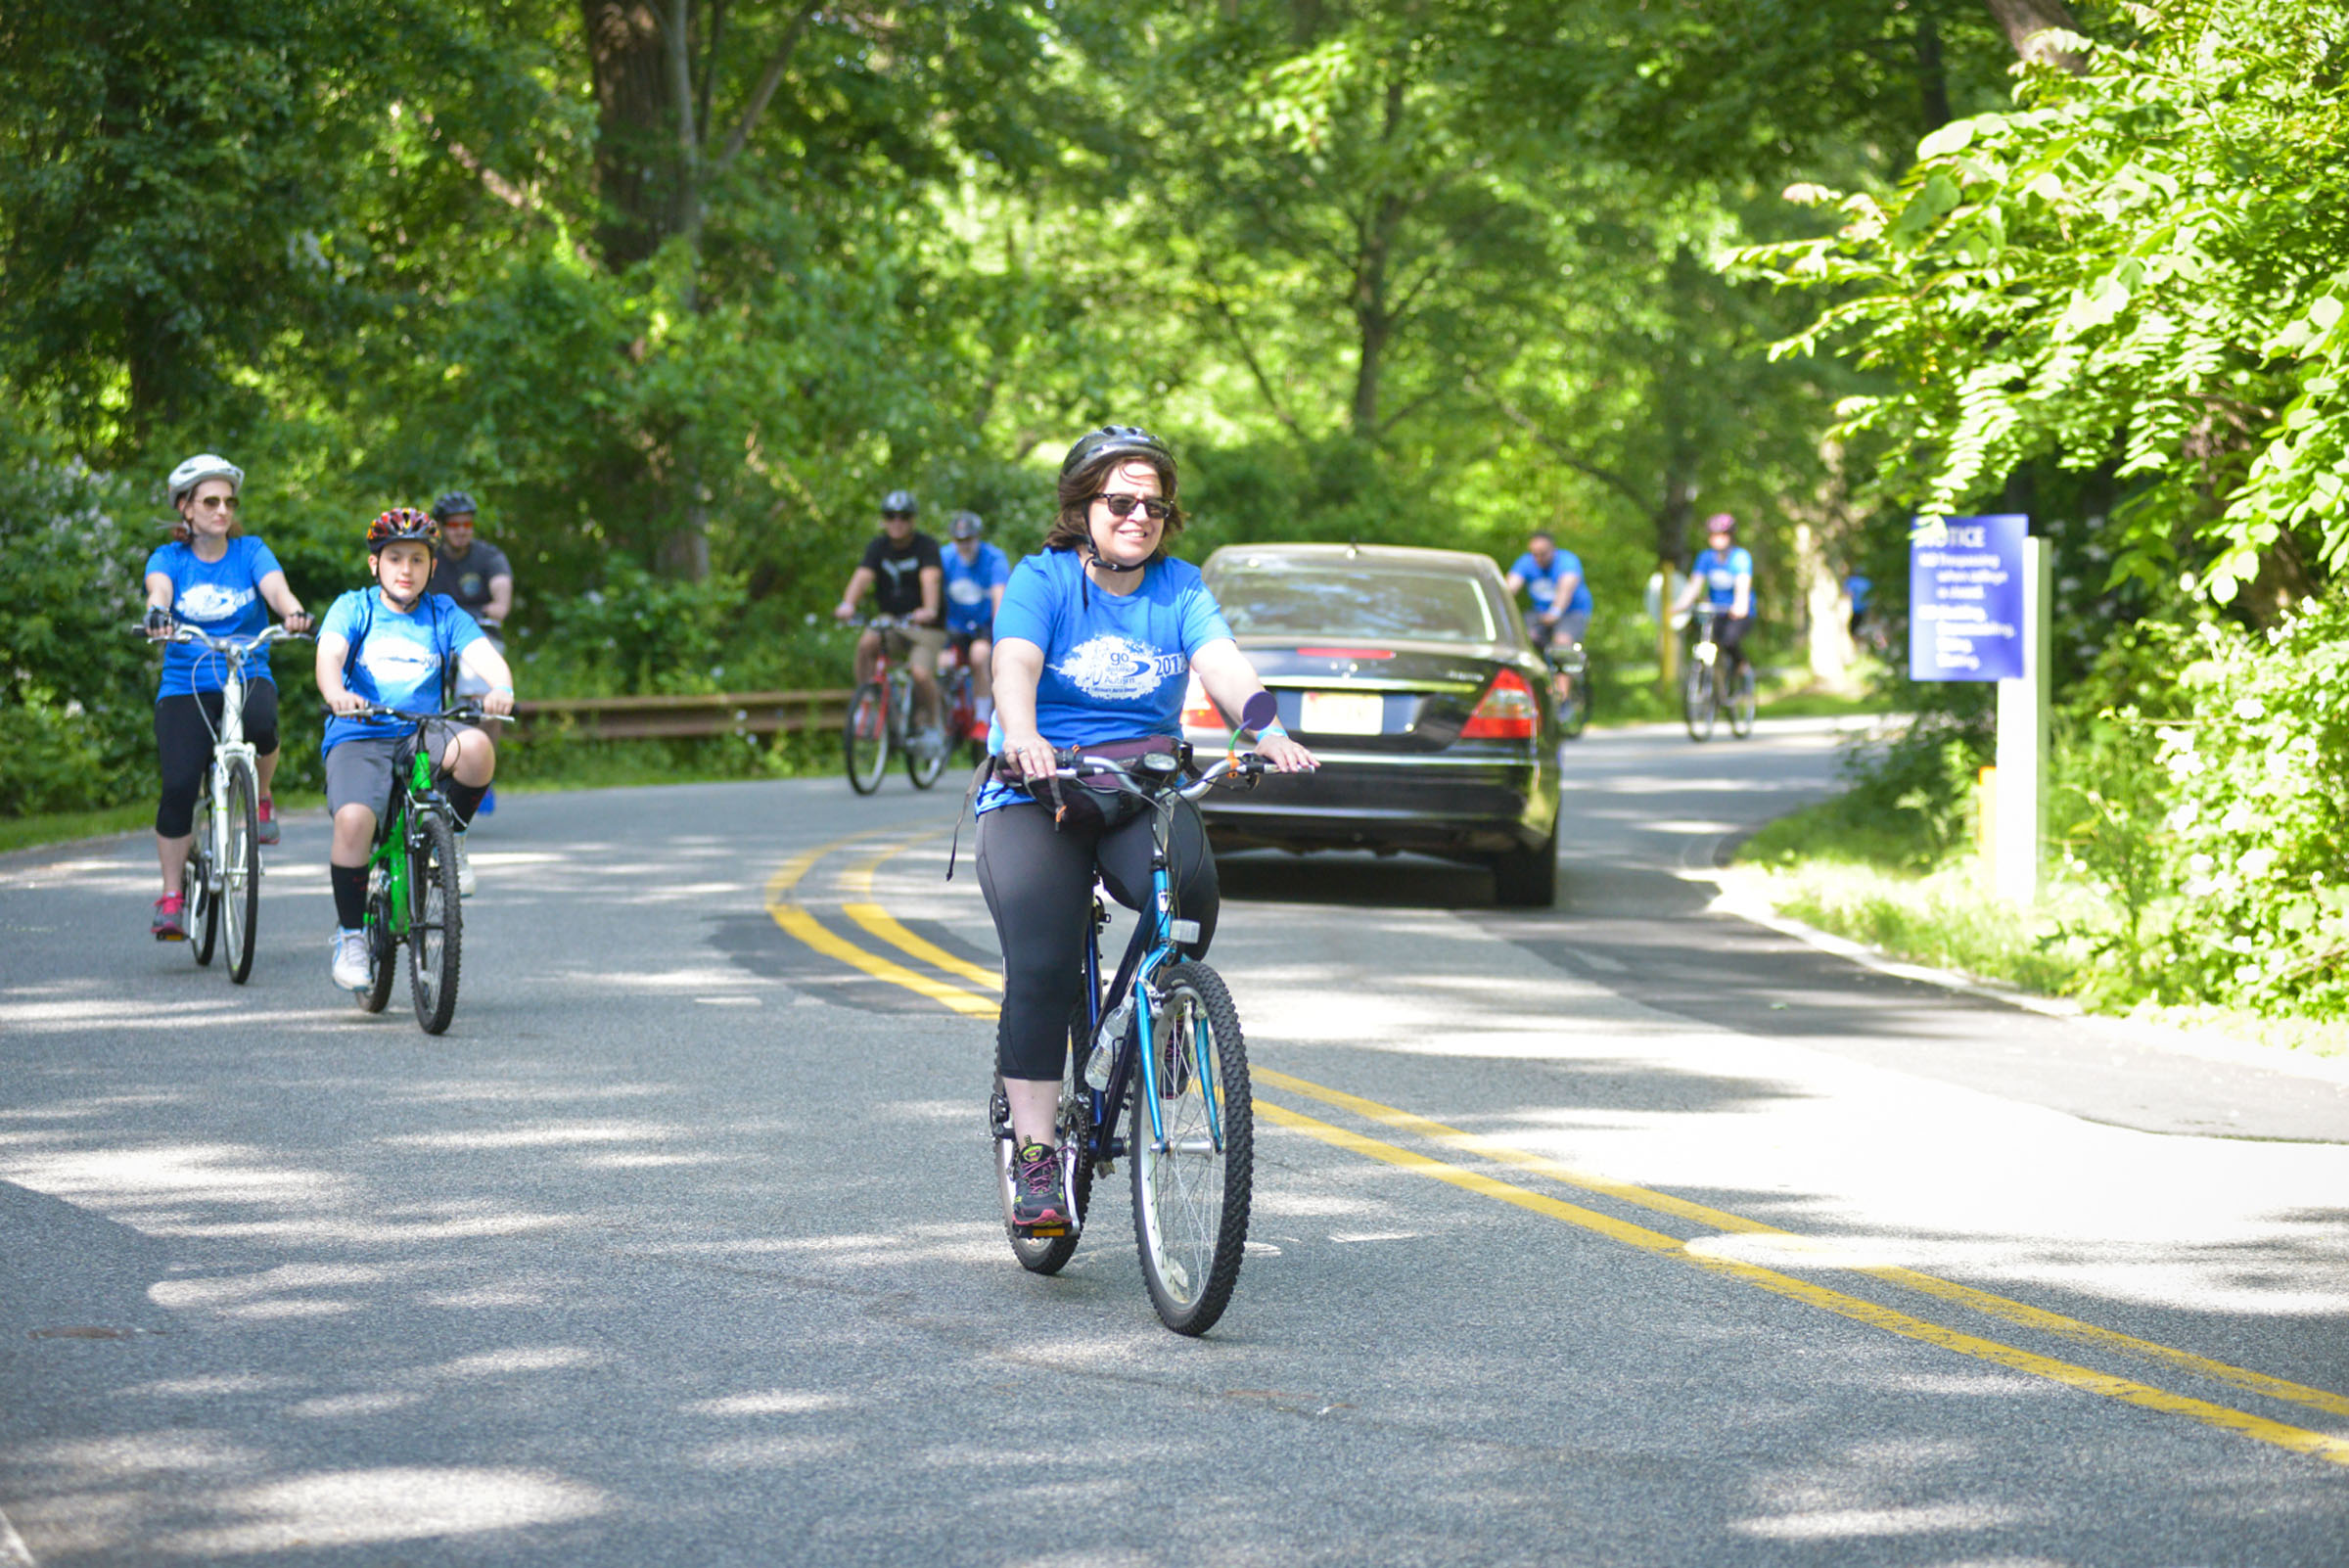 2017-06-04 GTD4A Charity Bike Ride - BCC - Paramus NJ-2022.jpg